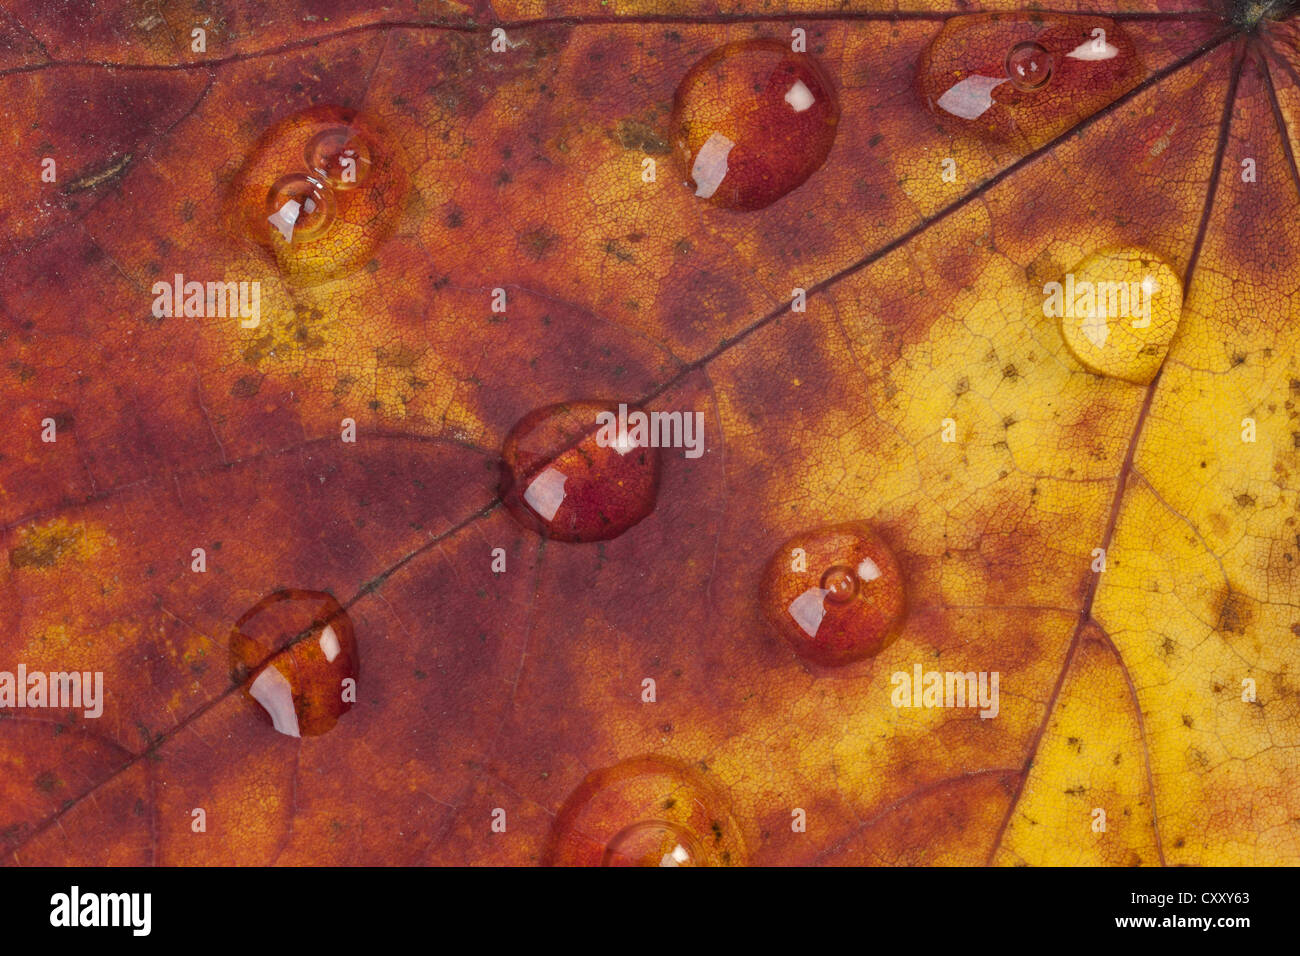 Close up of raindrops on an autumn leaf - Stock Image